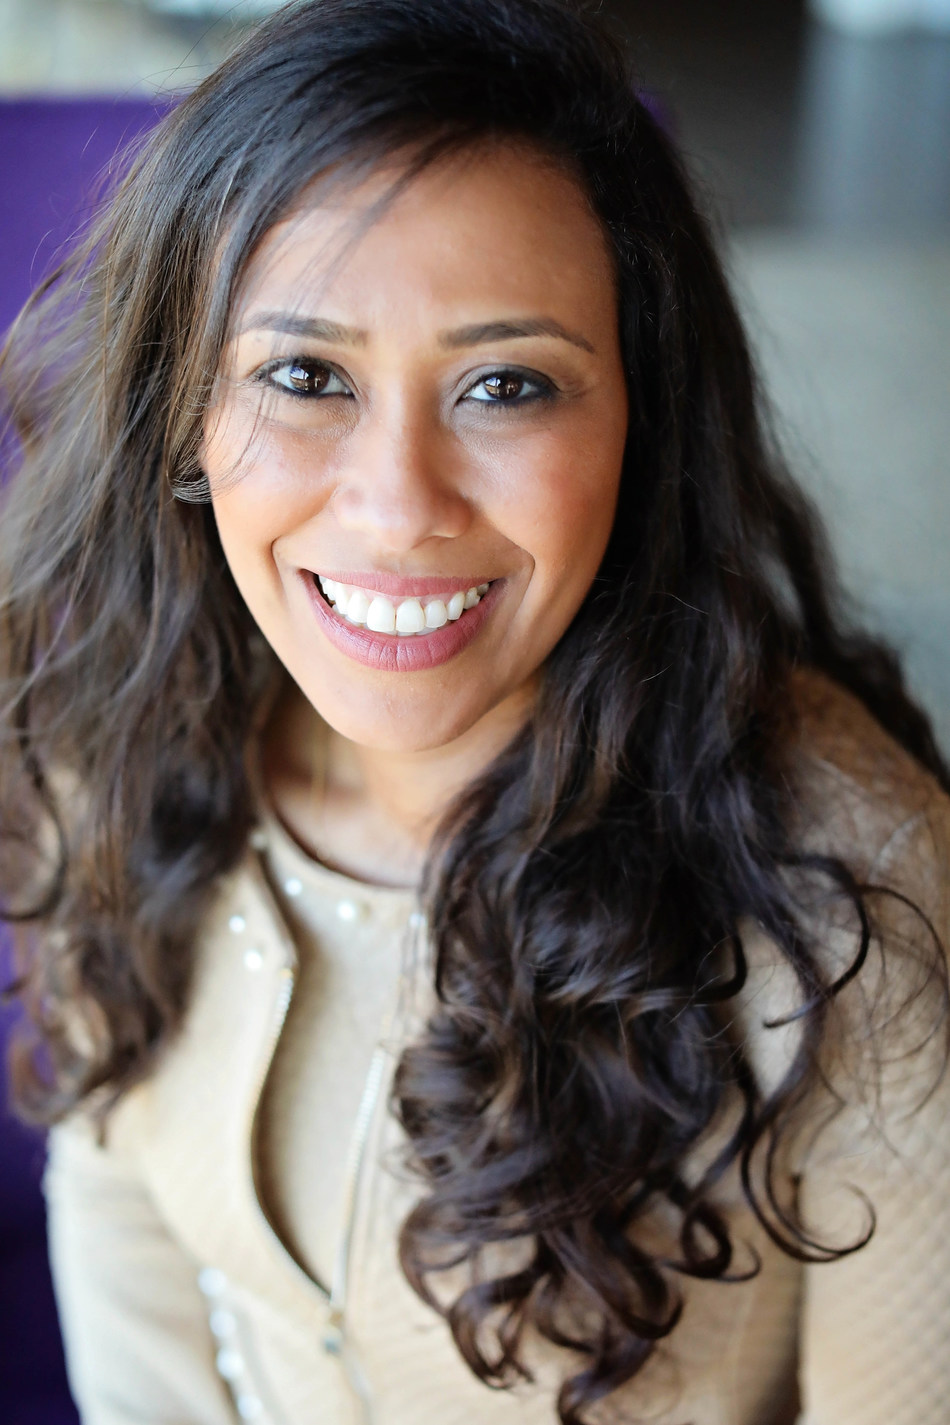 Zakieia Rouah is the youngest and only female master franchisee for Anytime Fitness.